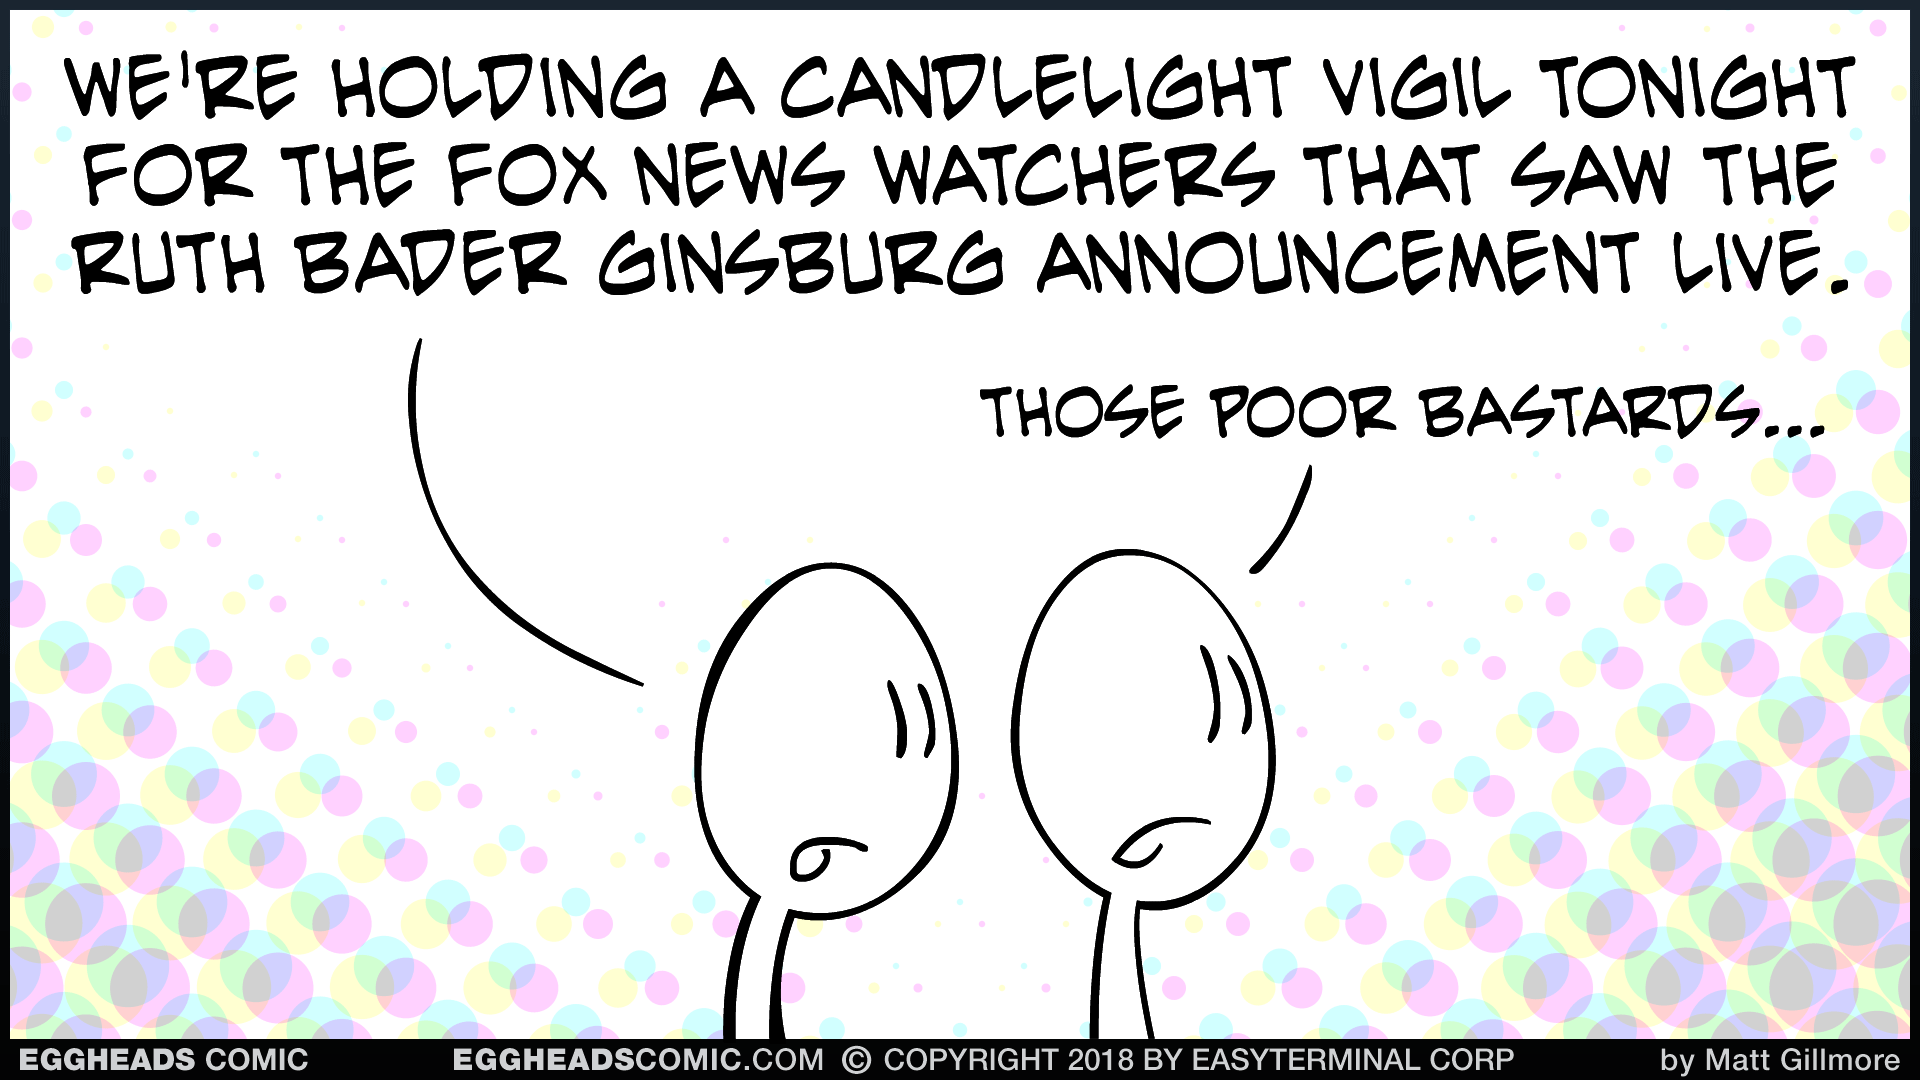 Webcomic Eggheads Comic Strip 143 Candlelight Vigil